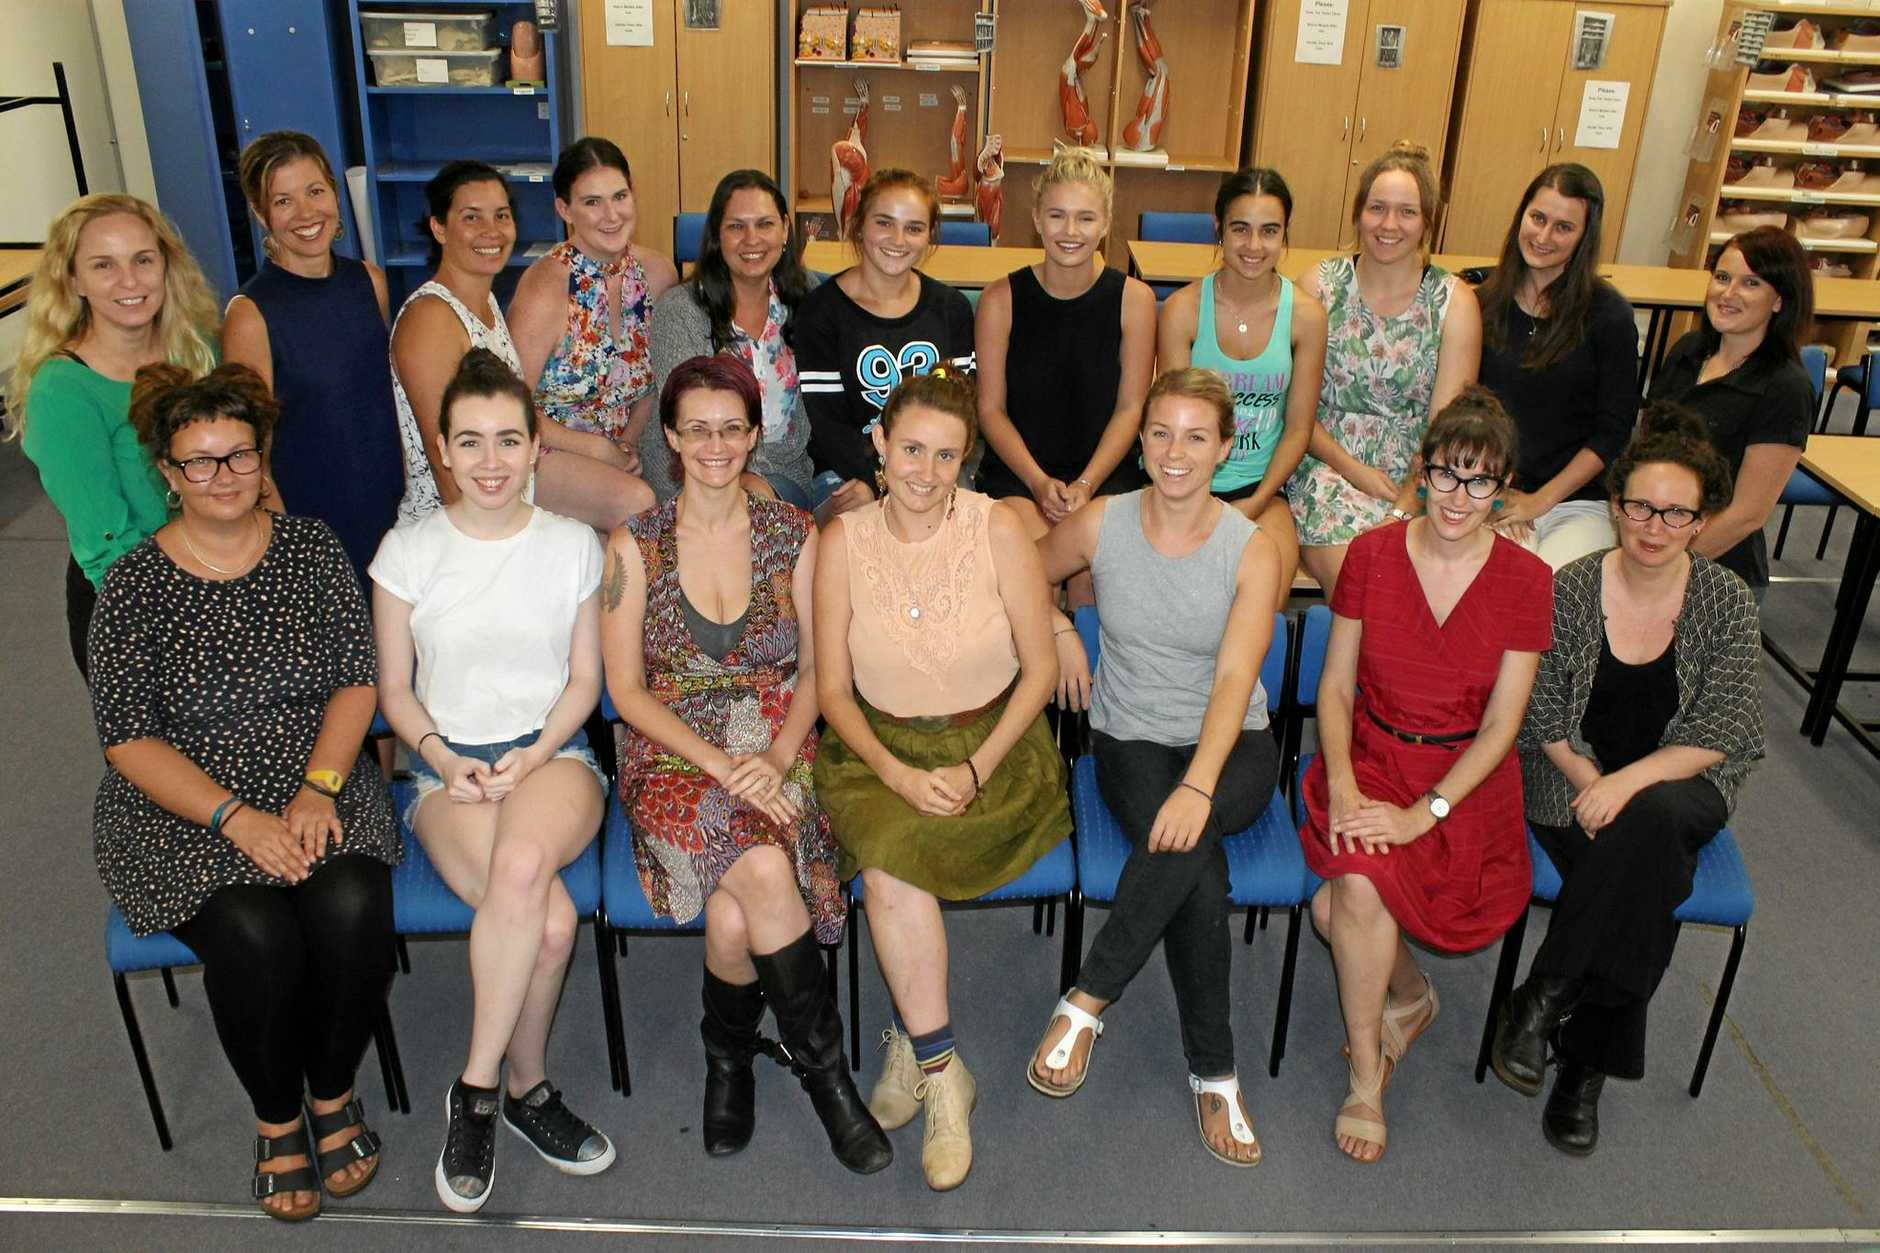 University of the Sunshine Coast Bachelor of Midwifery Program students. Back row, from left: Raelene O'Connor, Anita Campbell, Chawnlahnee Sunaklis, Mallory Hermann, Leanne Hodson, Abigail Leicht, Abbey Busby, Tahlia Avollo, Morgan Whitney, Hannah Guijt, Kylie Wiggett.Front row, from left: Victoria Kingsland Cheesbrough, Rebecca Finch, Angel Goulter, Charlo